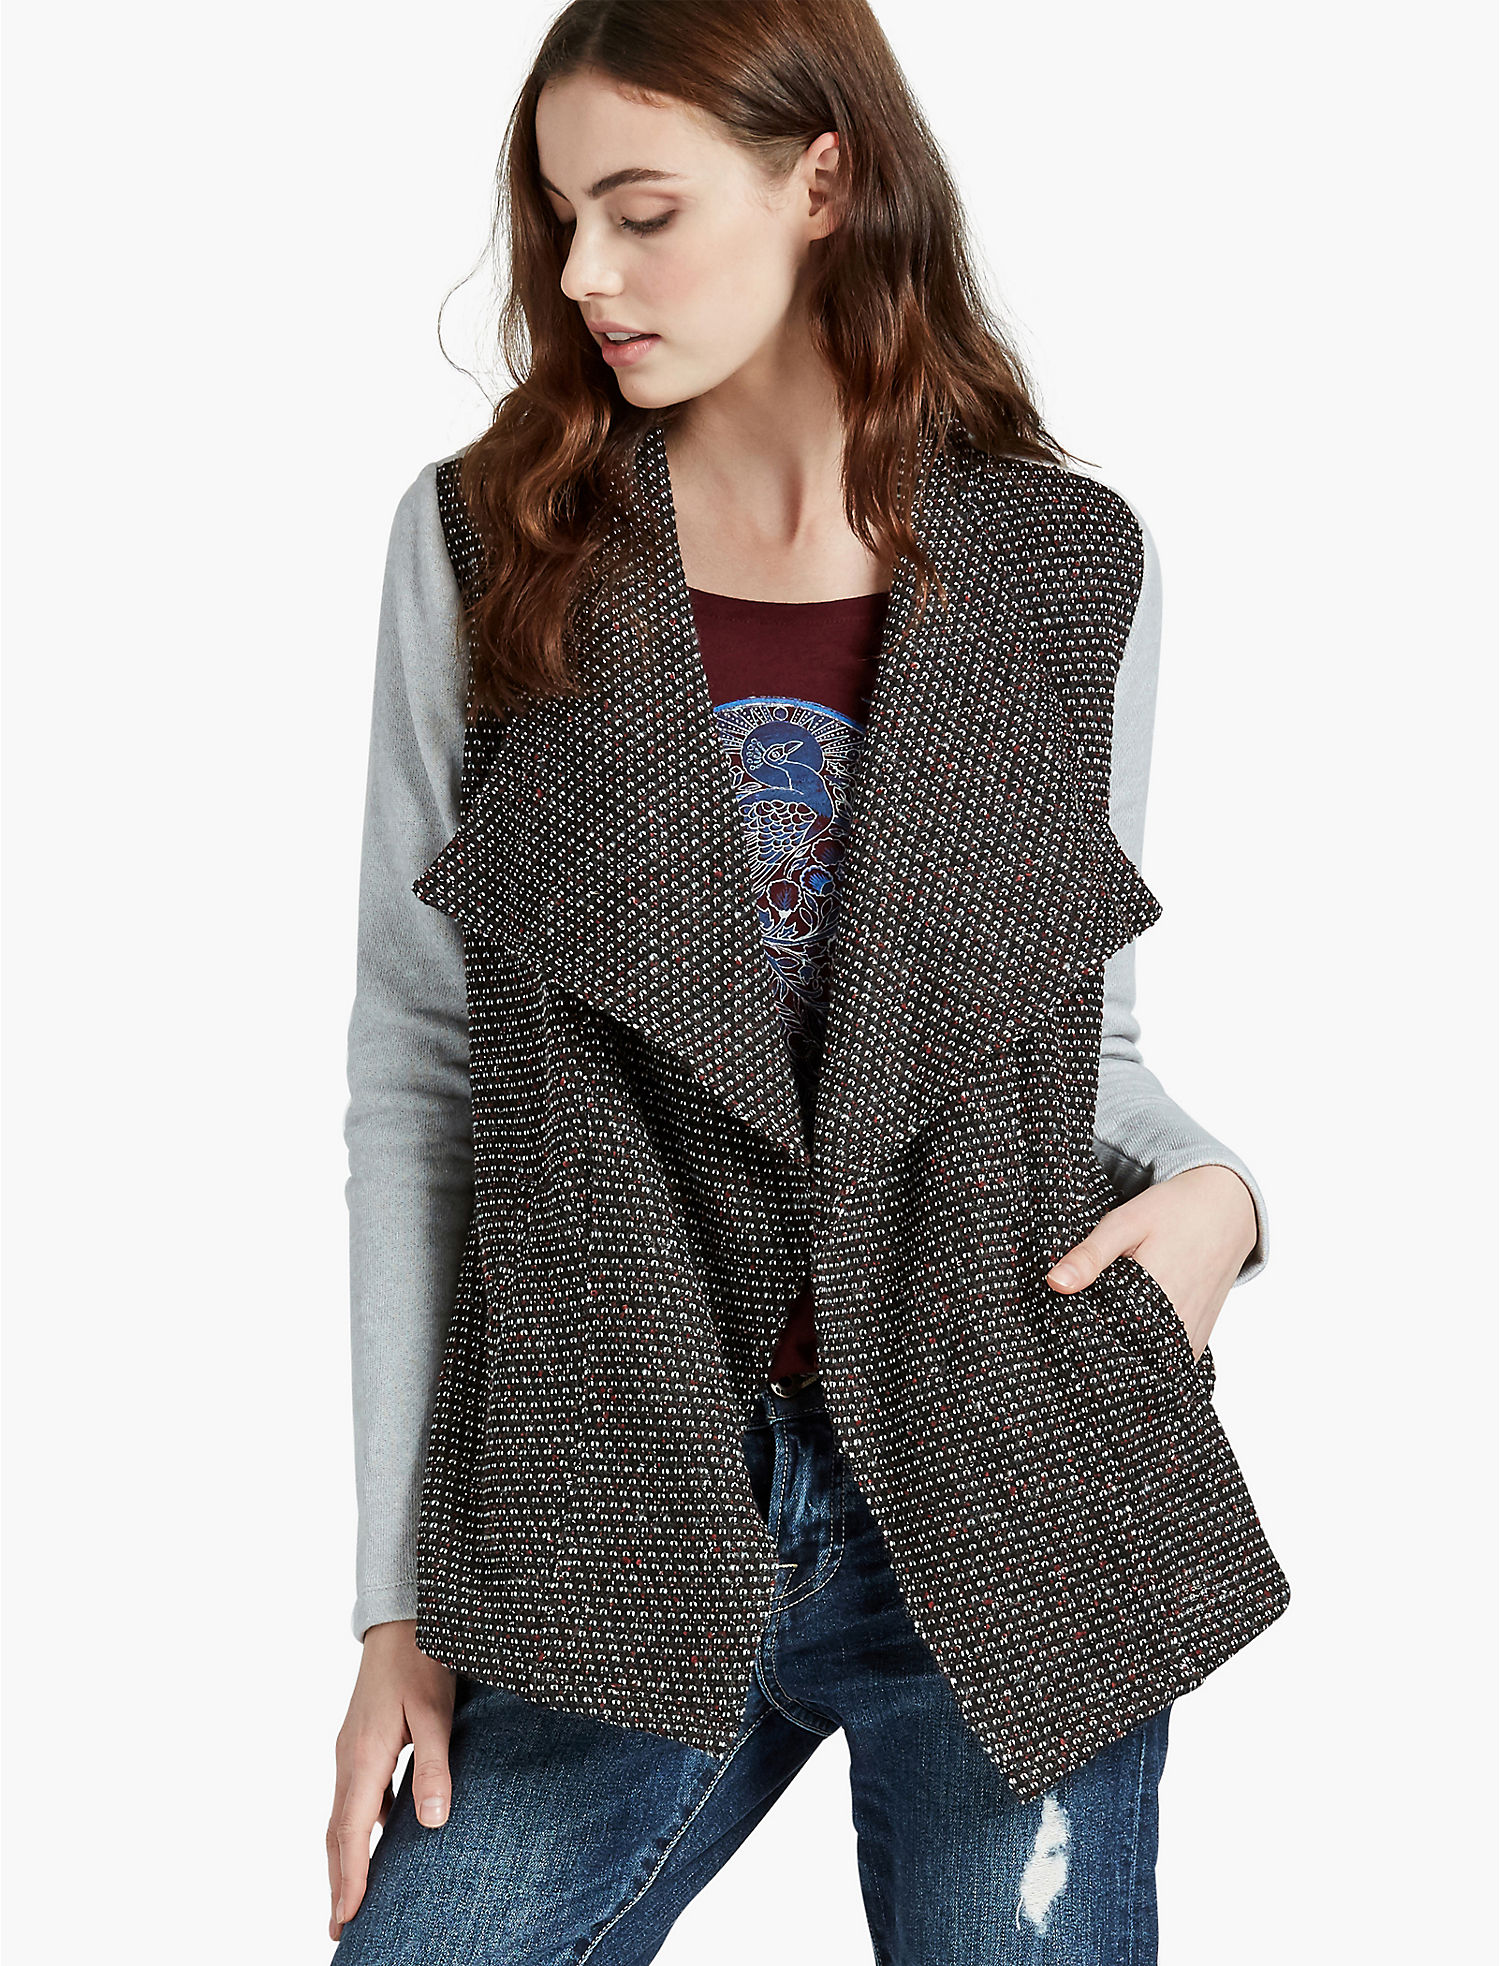 image front nordstrom cardigan sweater vince product of drape shop wool rack drapes cashmere